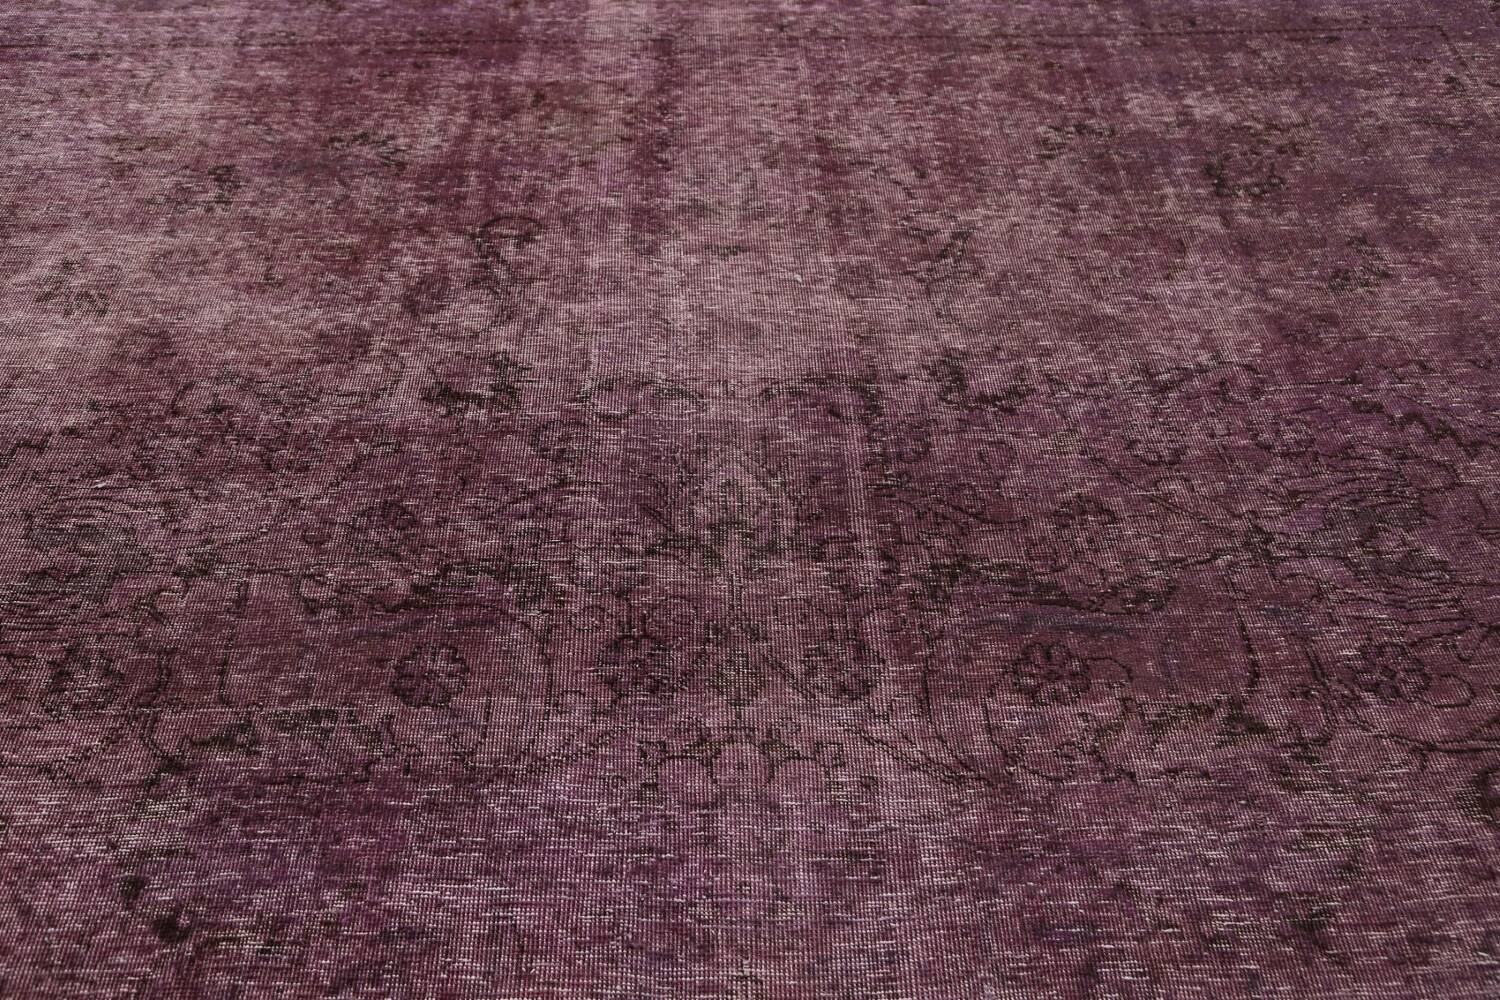 Distressed Over-dyed Tabriz Persian Area Rug 10x11 image 11